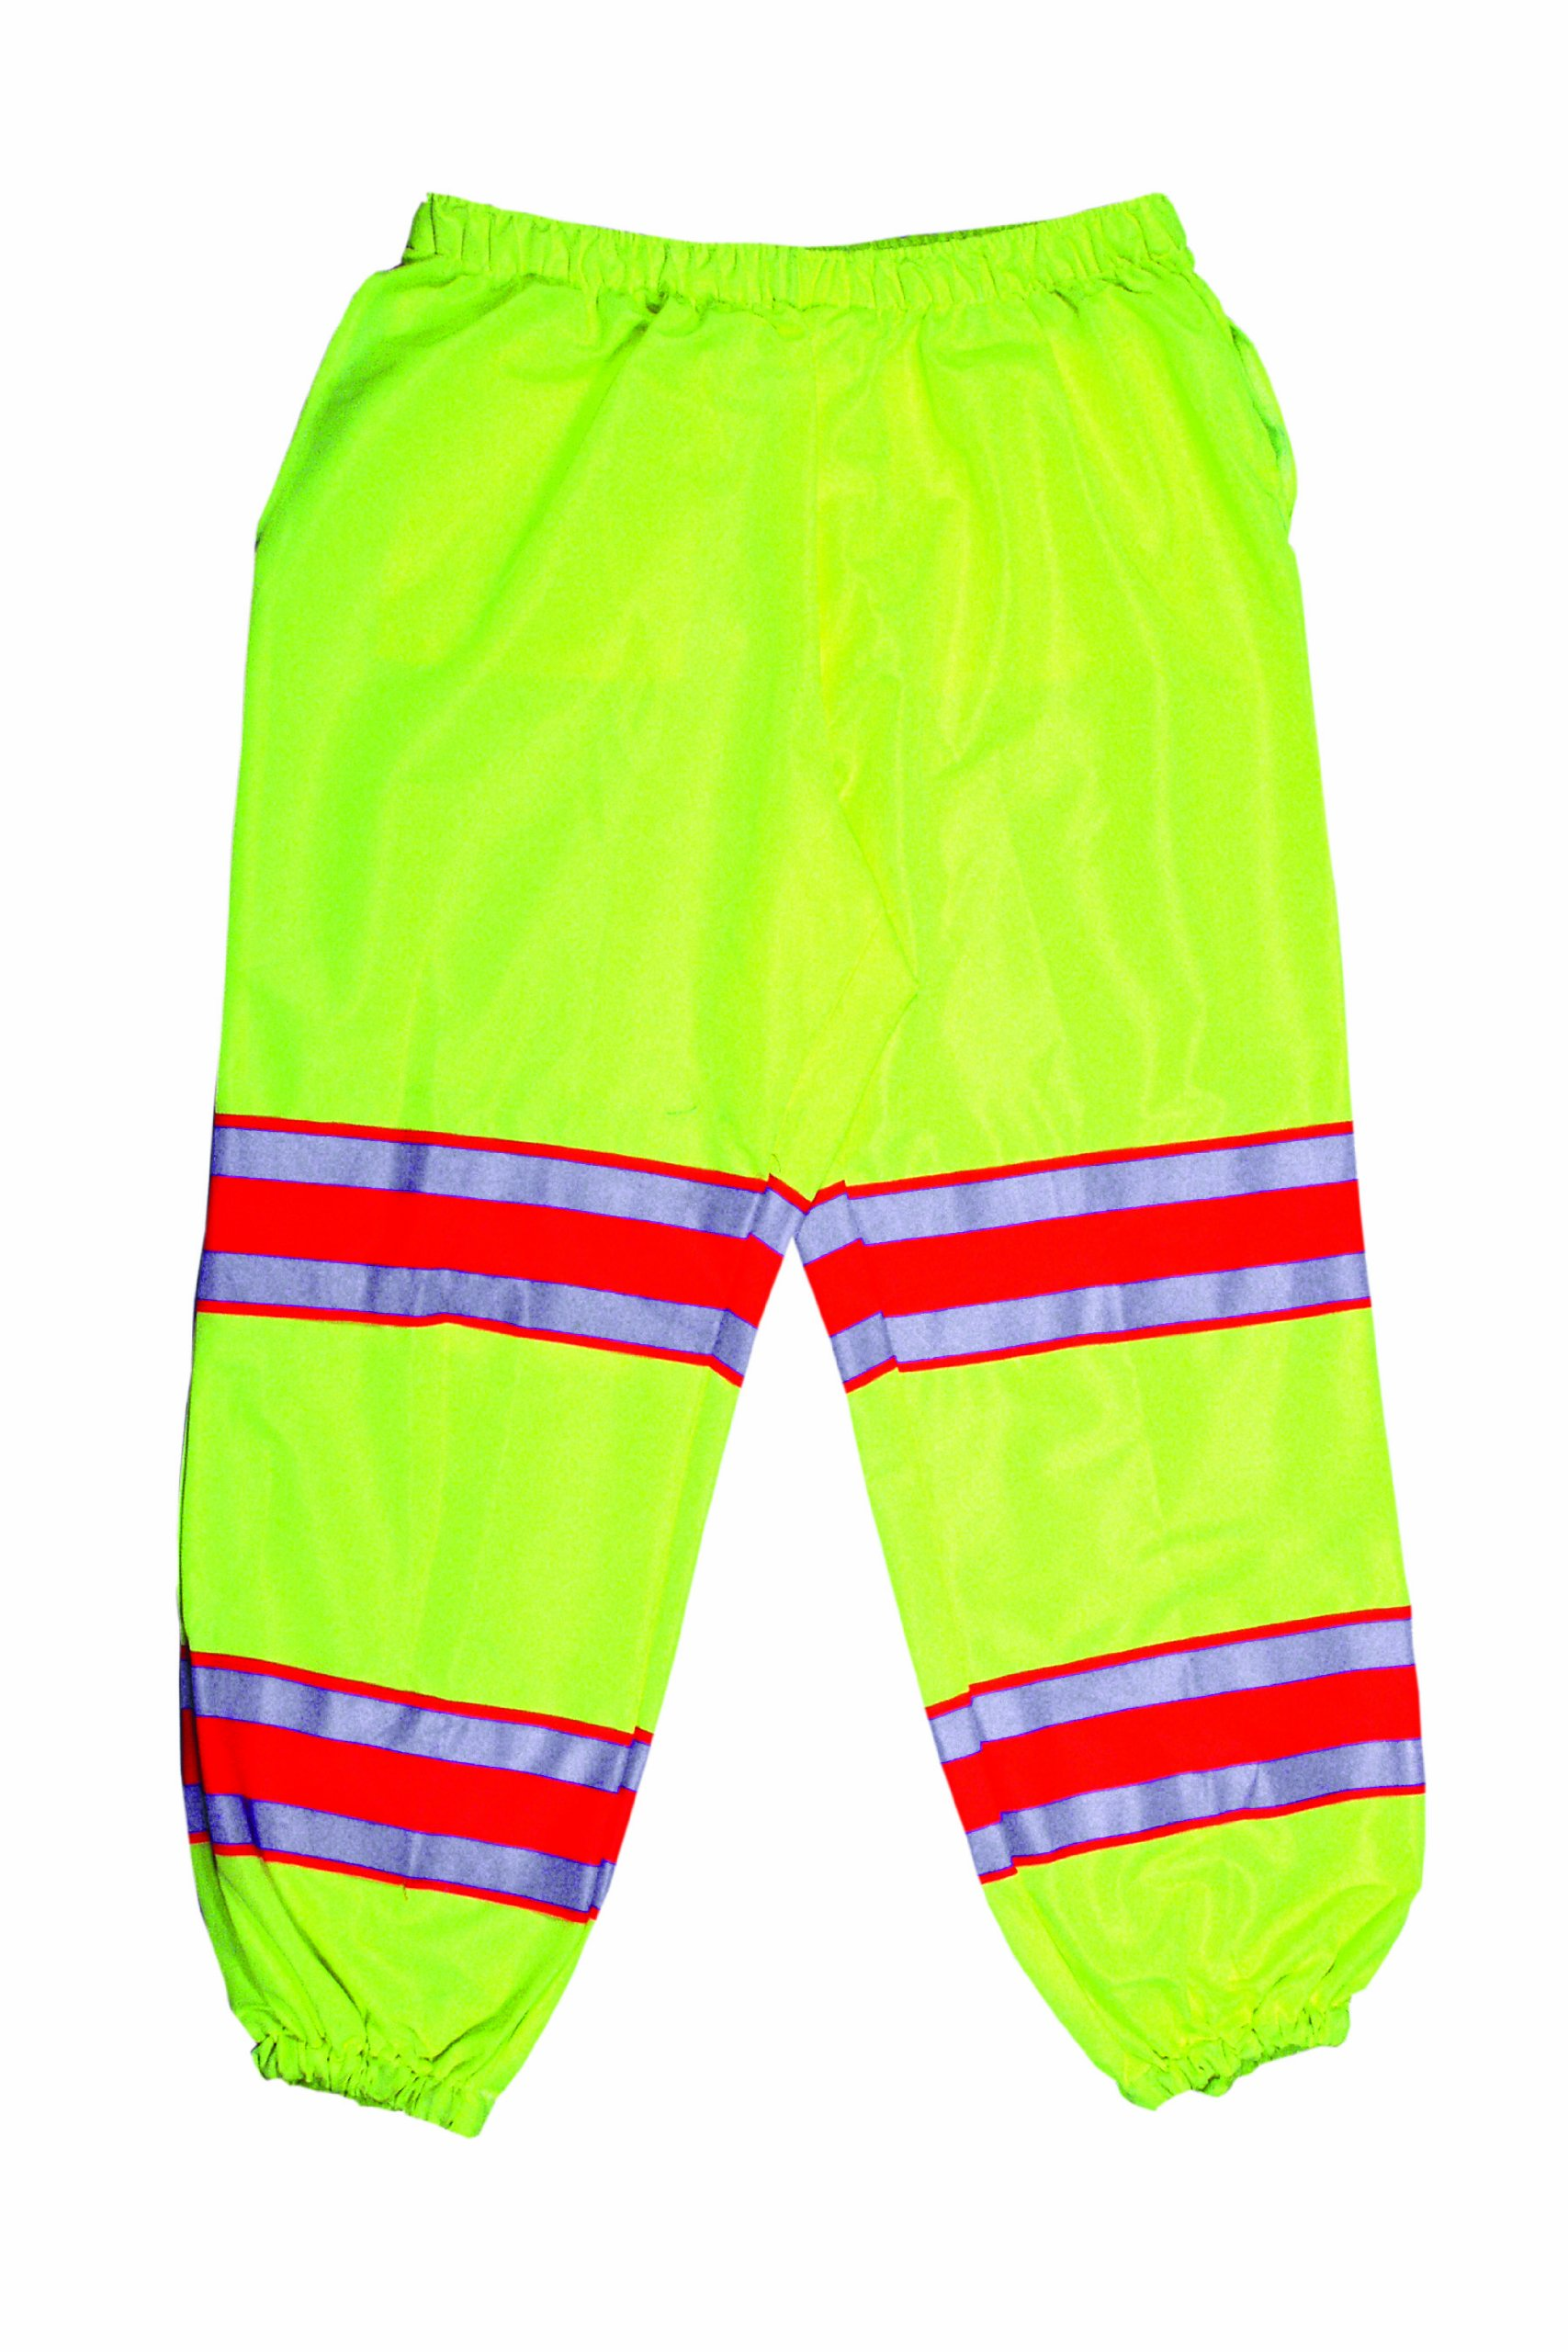 Mutual 16328 High Visibility Polyester ANSI Class E Pant with 4'' Silver/Orange/Silver Reflective Tapes, Lime